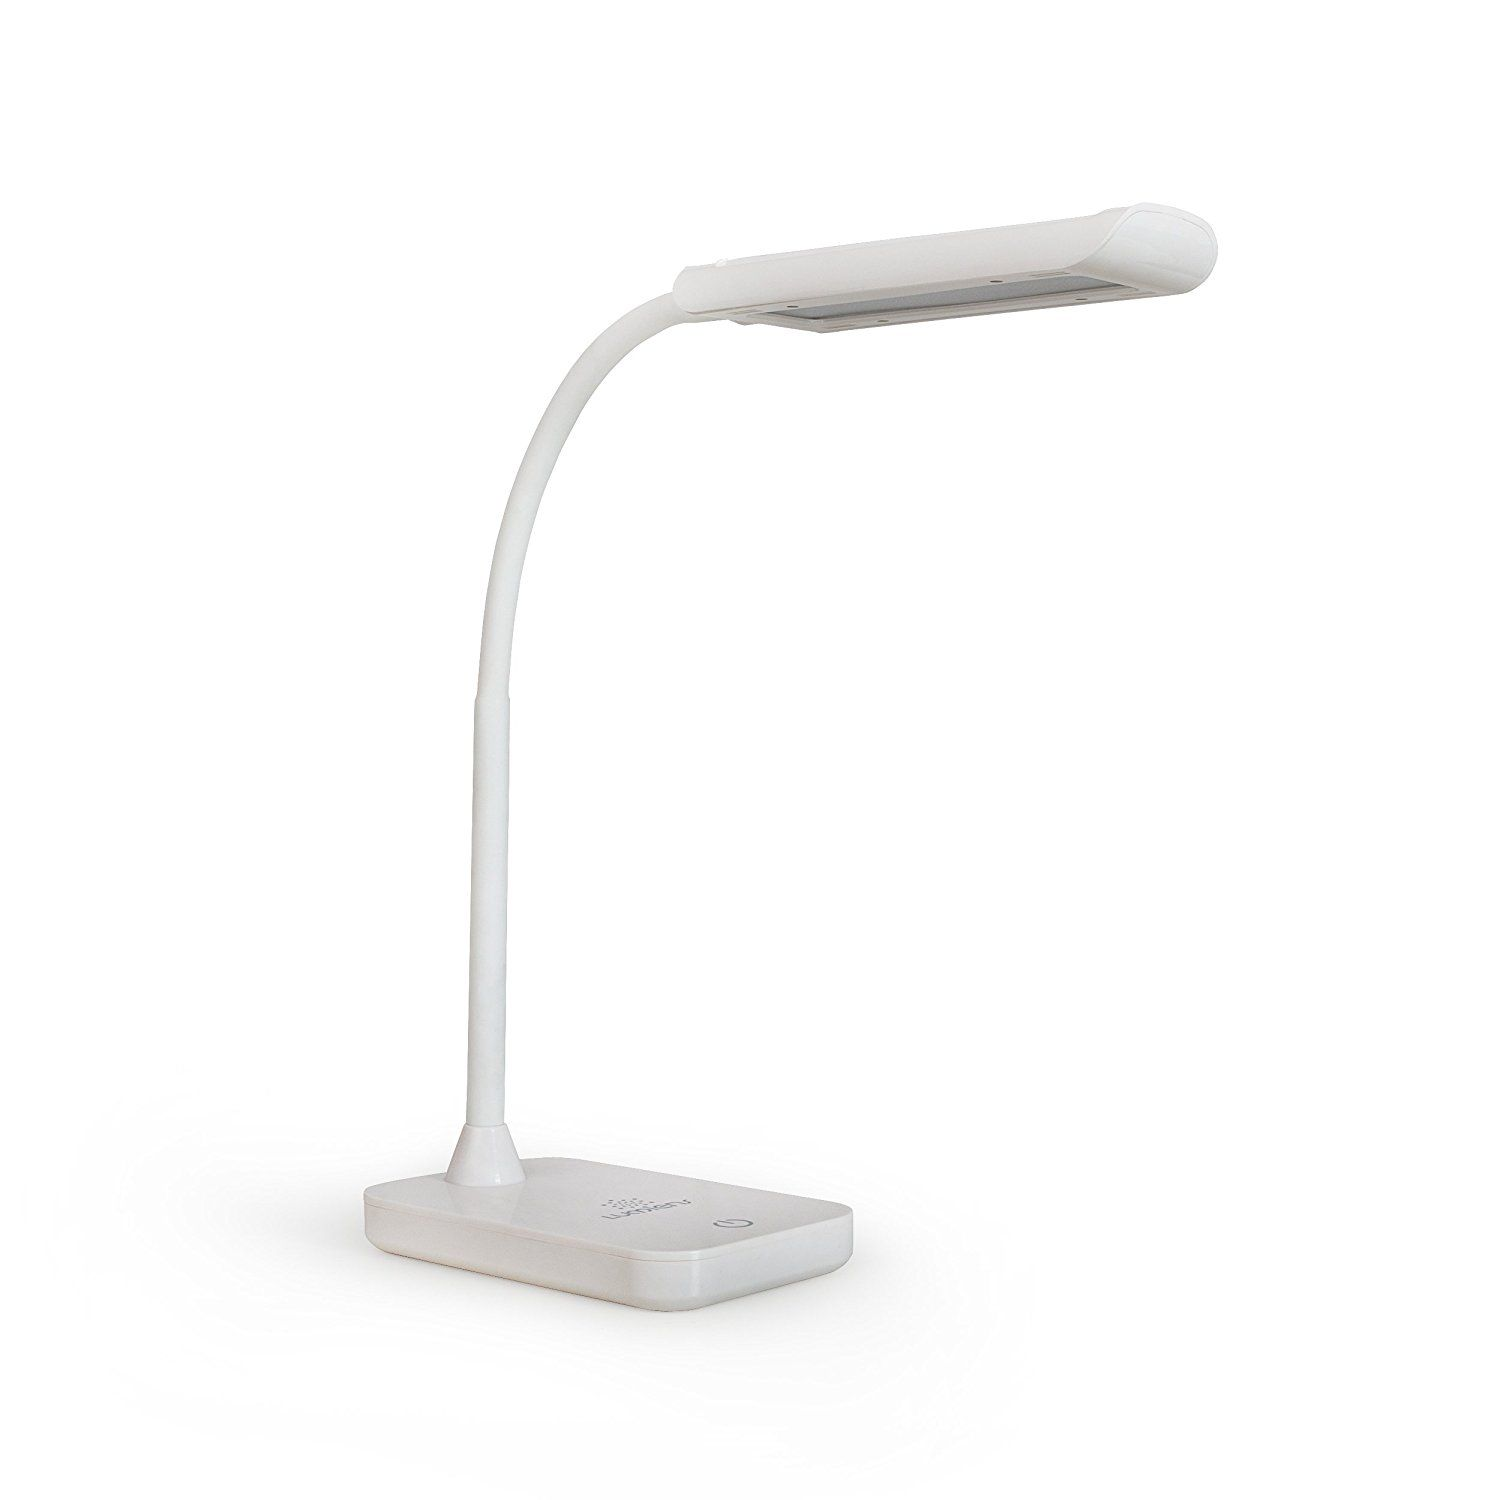 lovely nsyd the trend pict amazon and uncategorized of inspiration desk best led lamp ideas